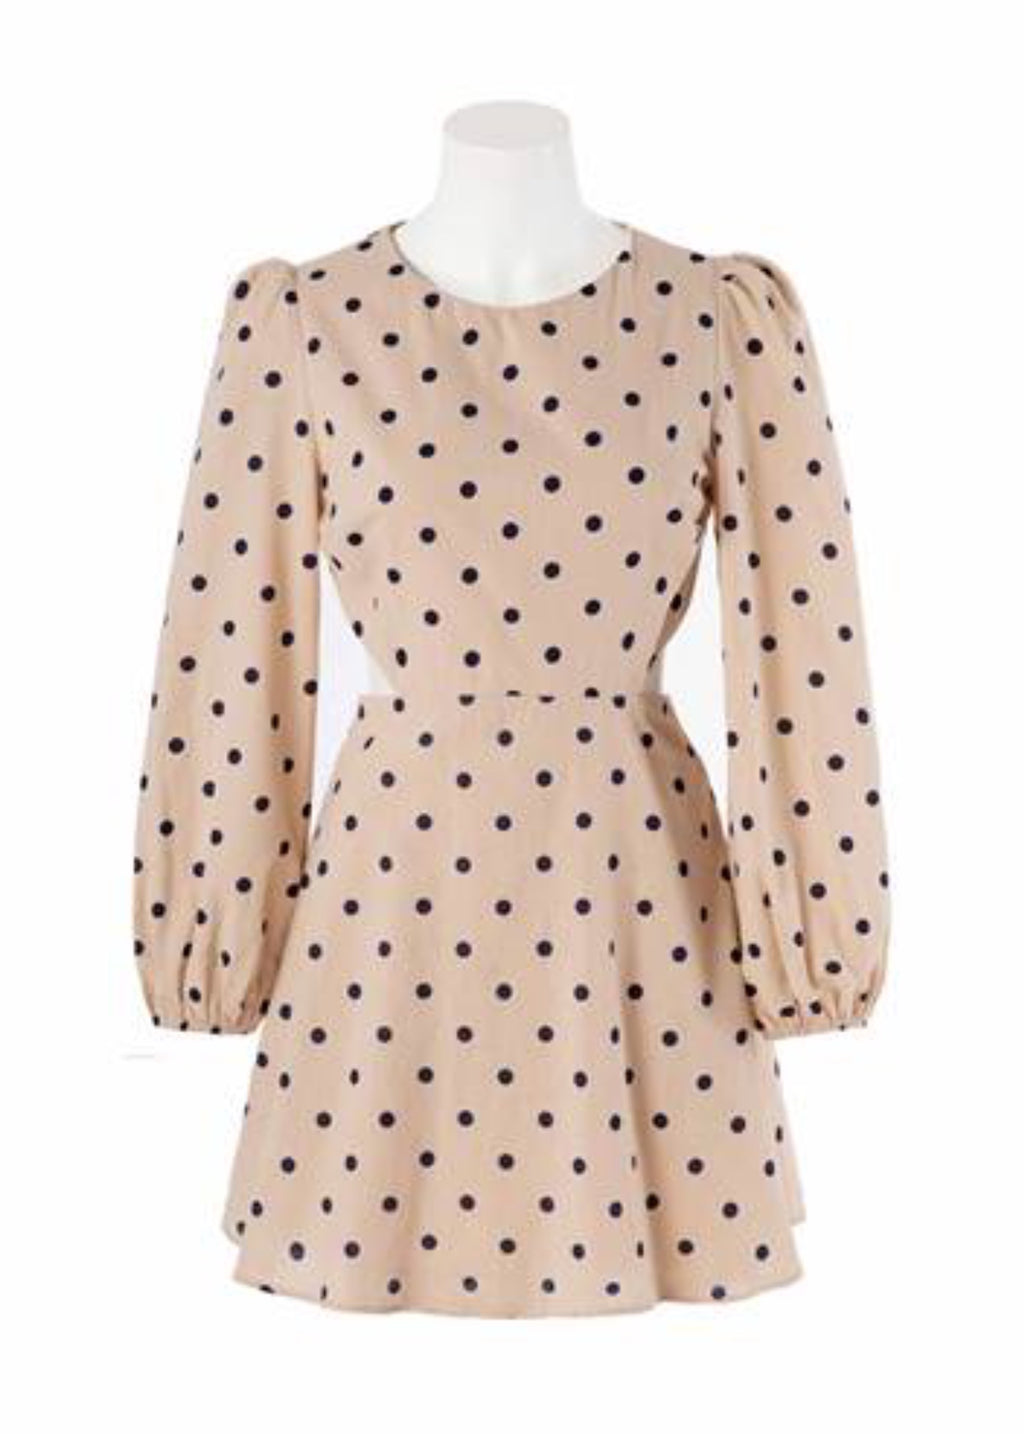 STASSI DRESS - POLKA DOT